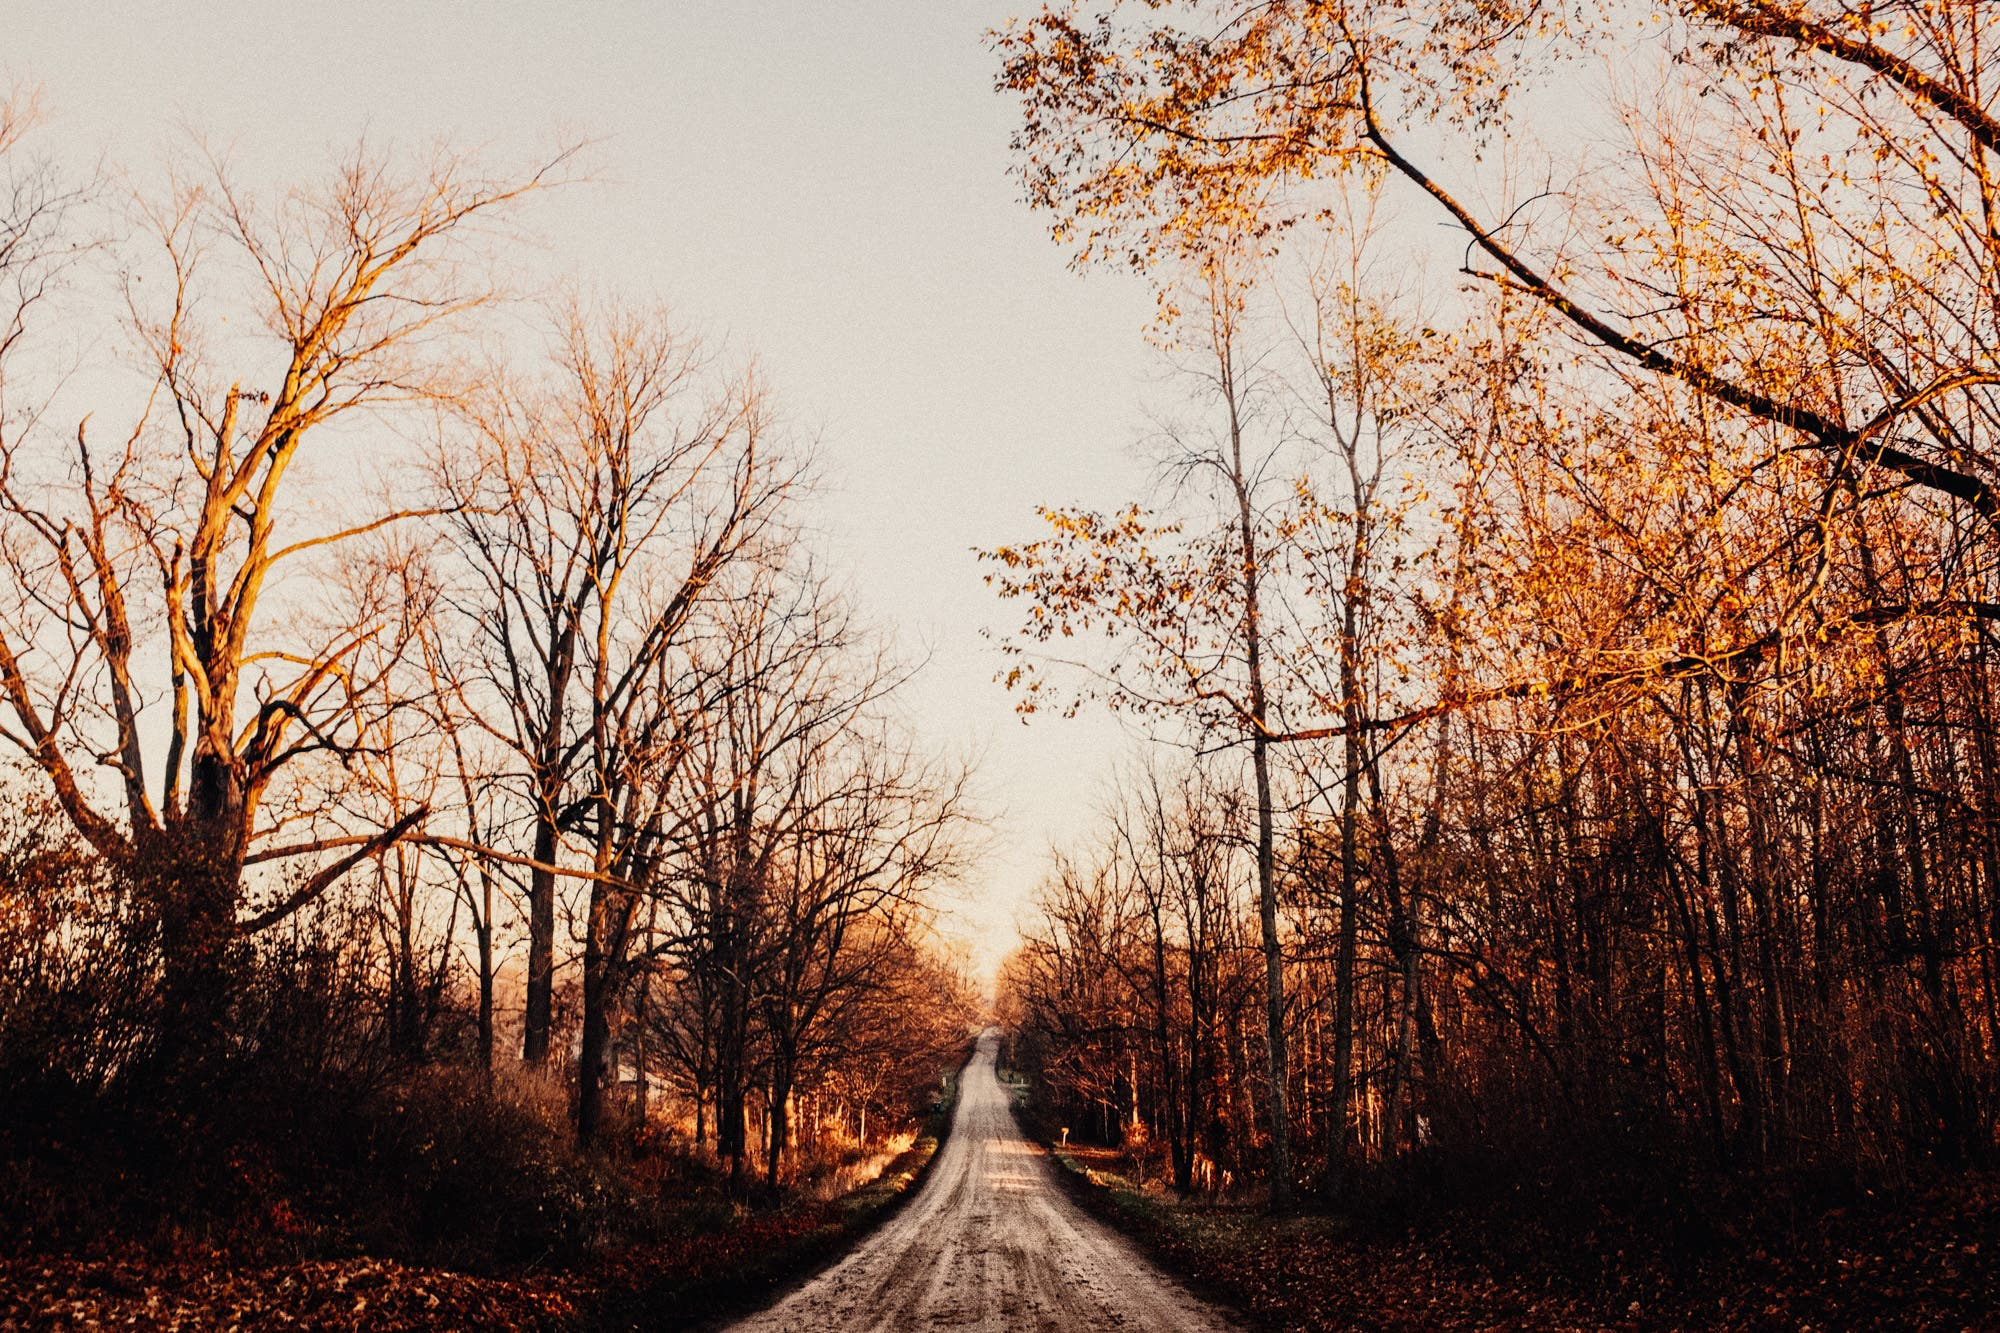 Bryan Minear: On Mobile Photography and Landscapes